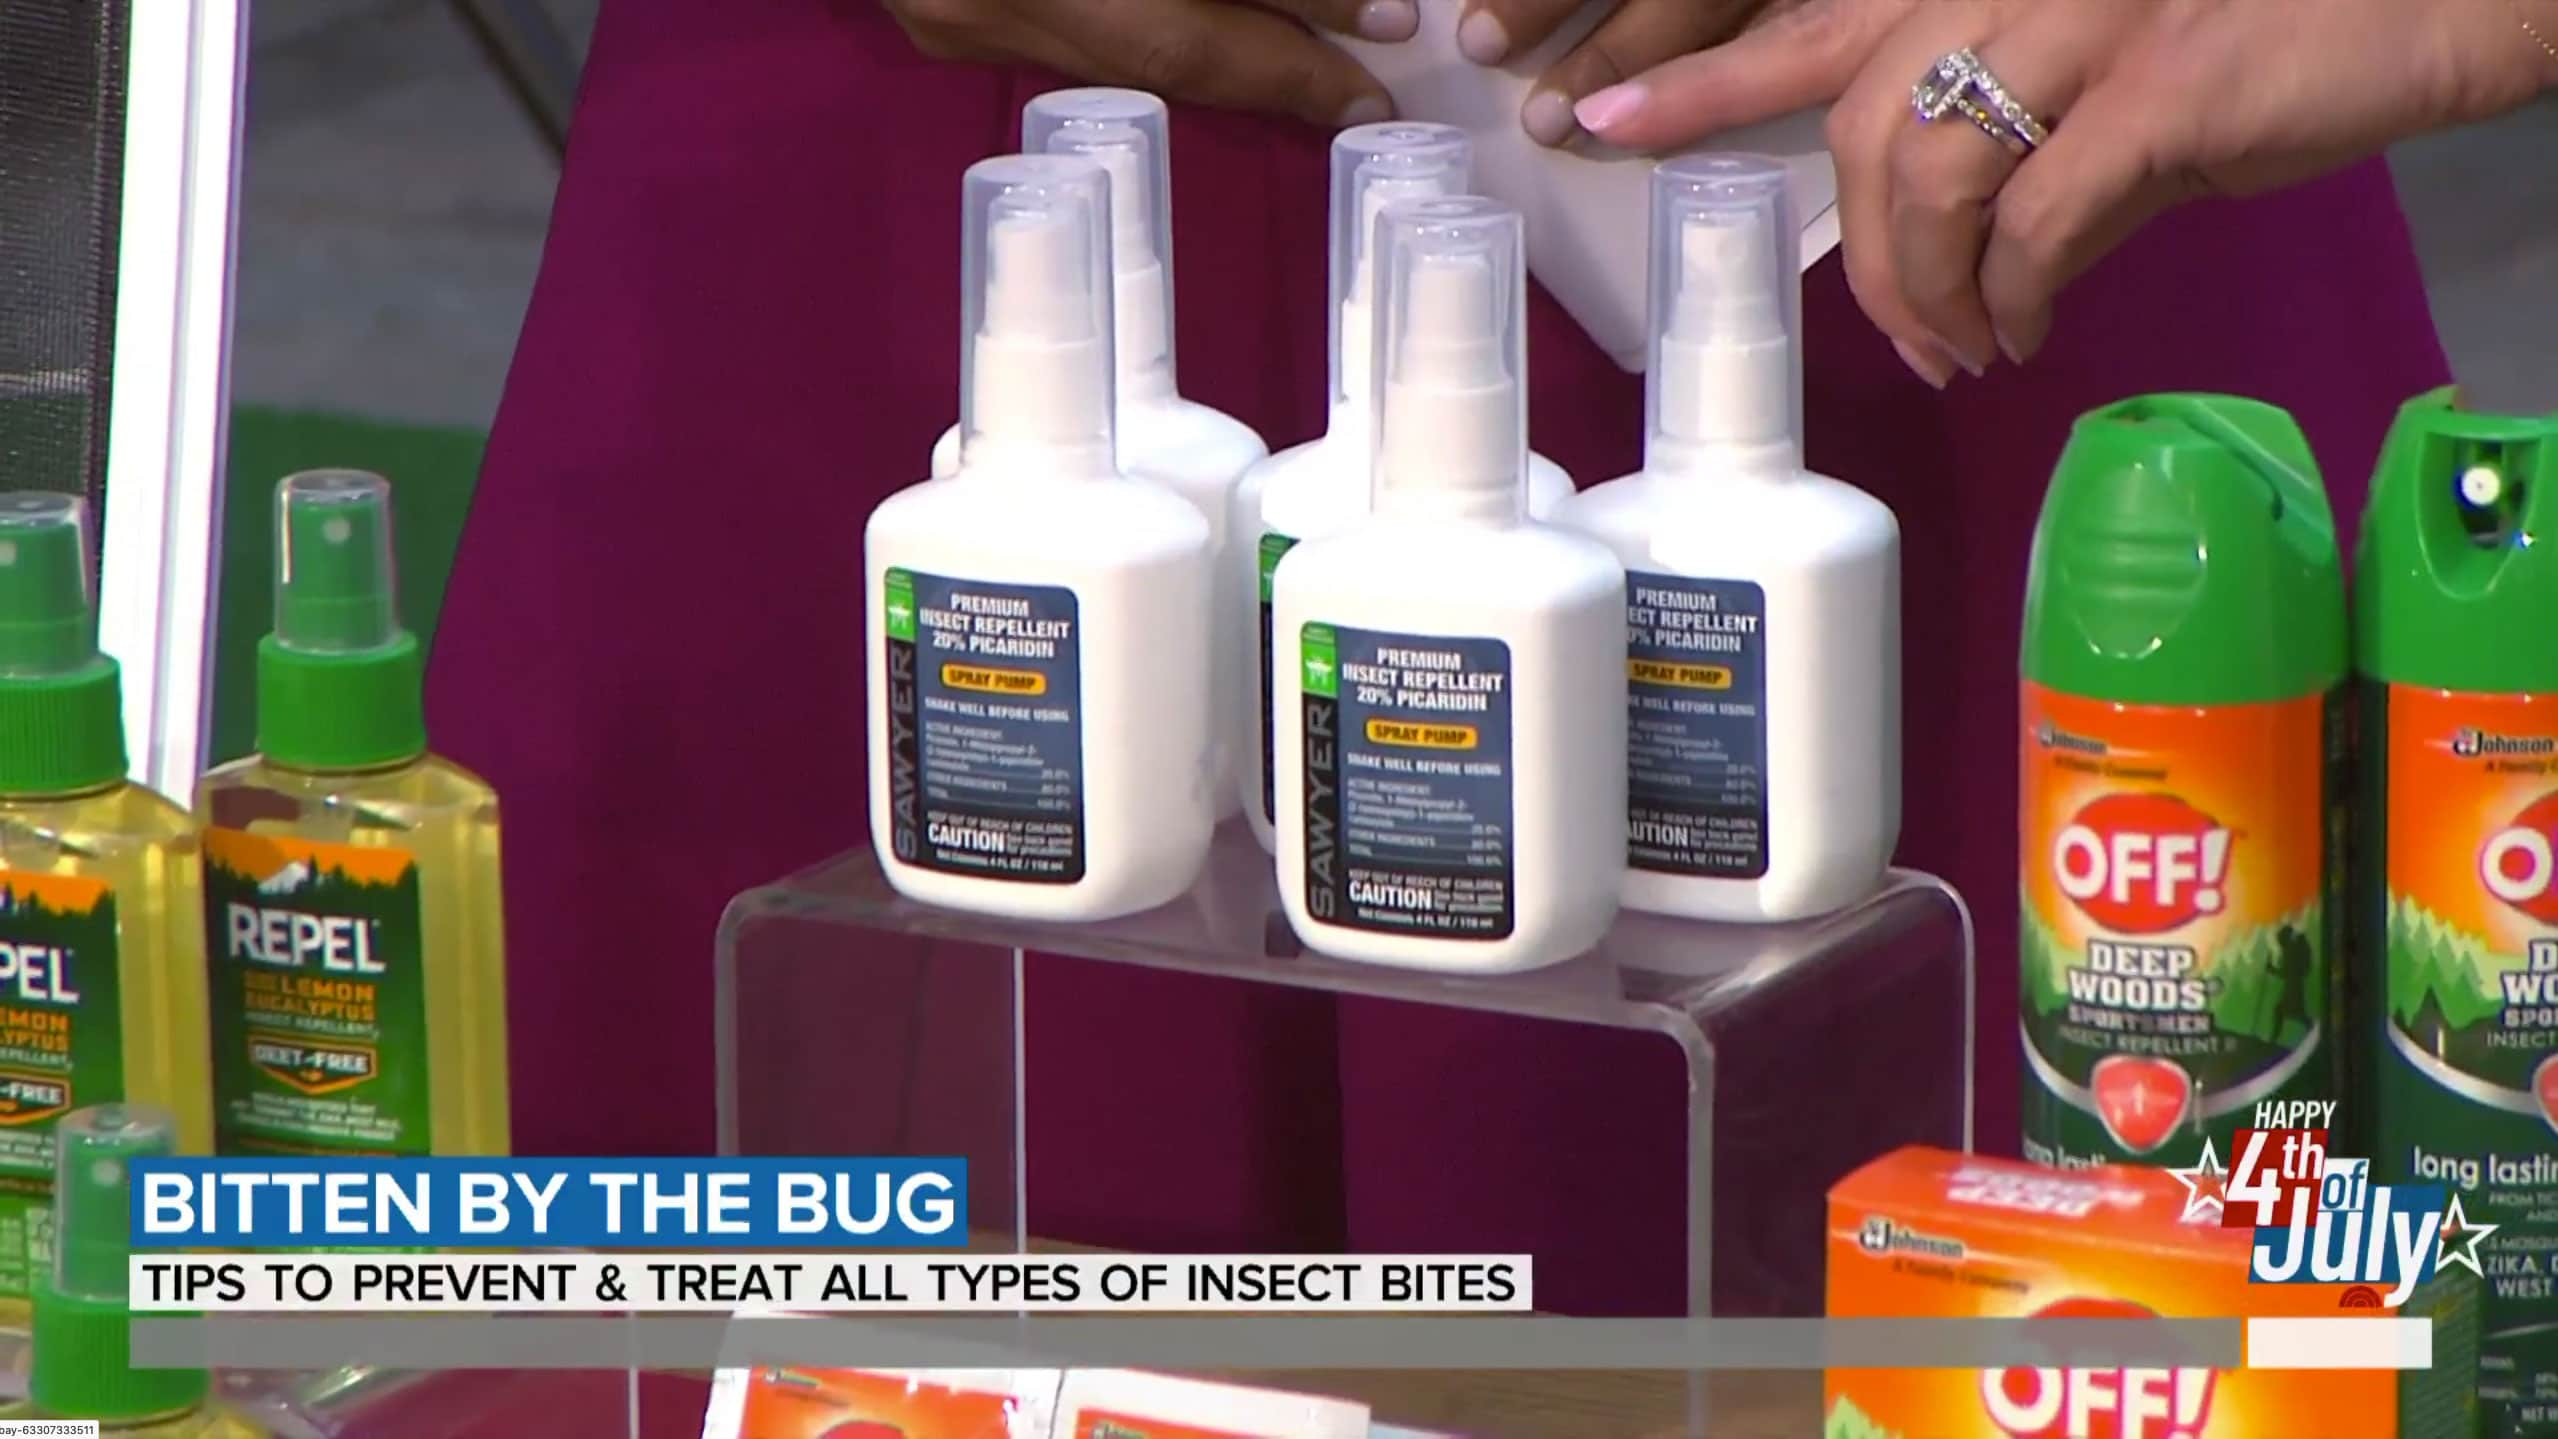 Today-Show-the-5-best-mosquito-repellents-2019